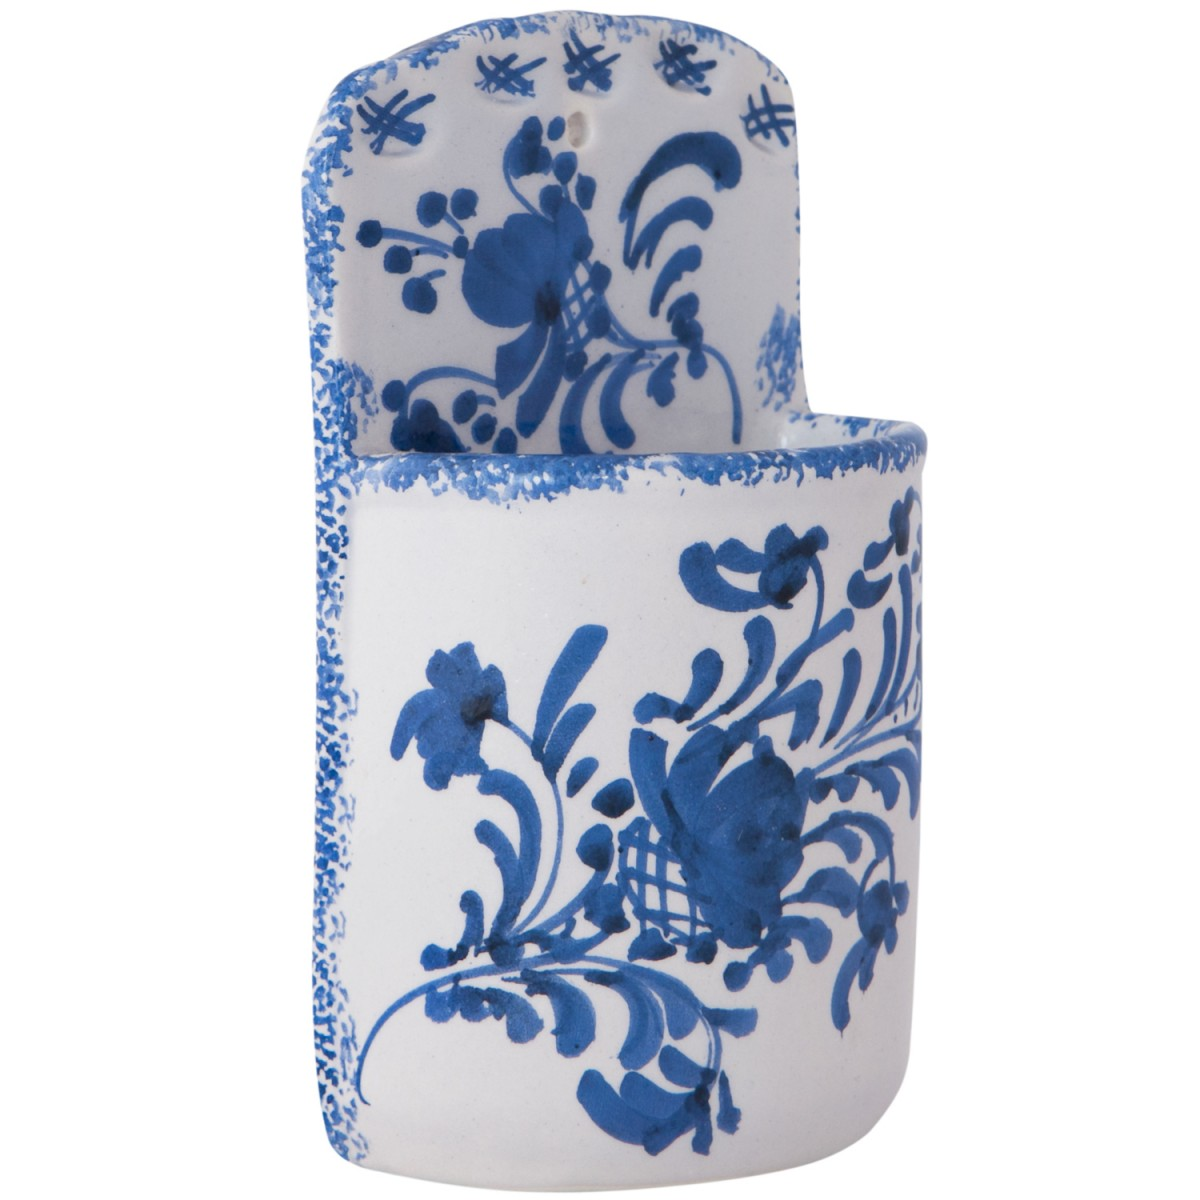 Hand_Painted_Blue_and_White_Ceramics_Hanging_Spoon_Rest-Flowers-1